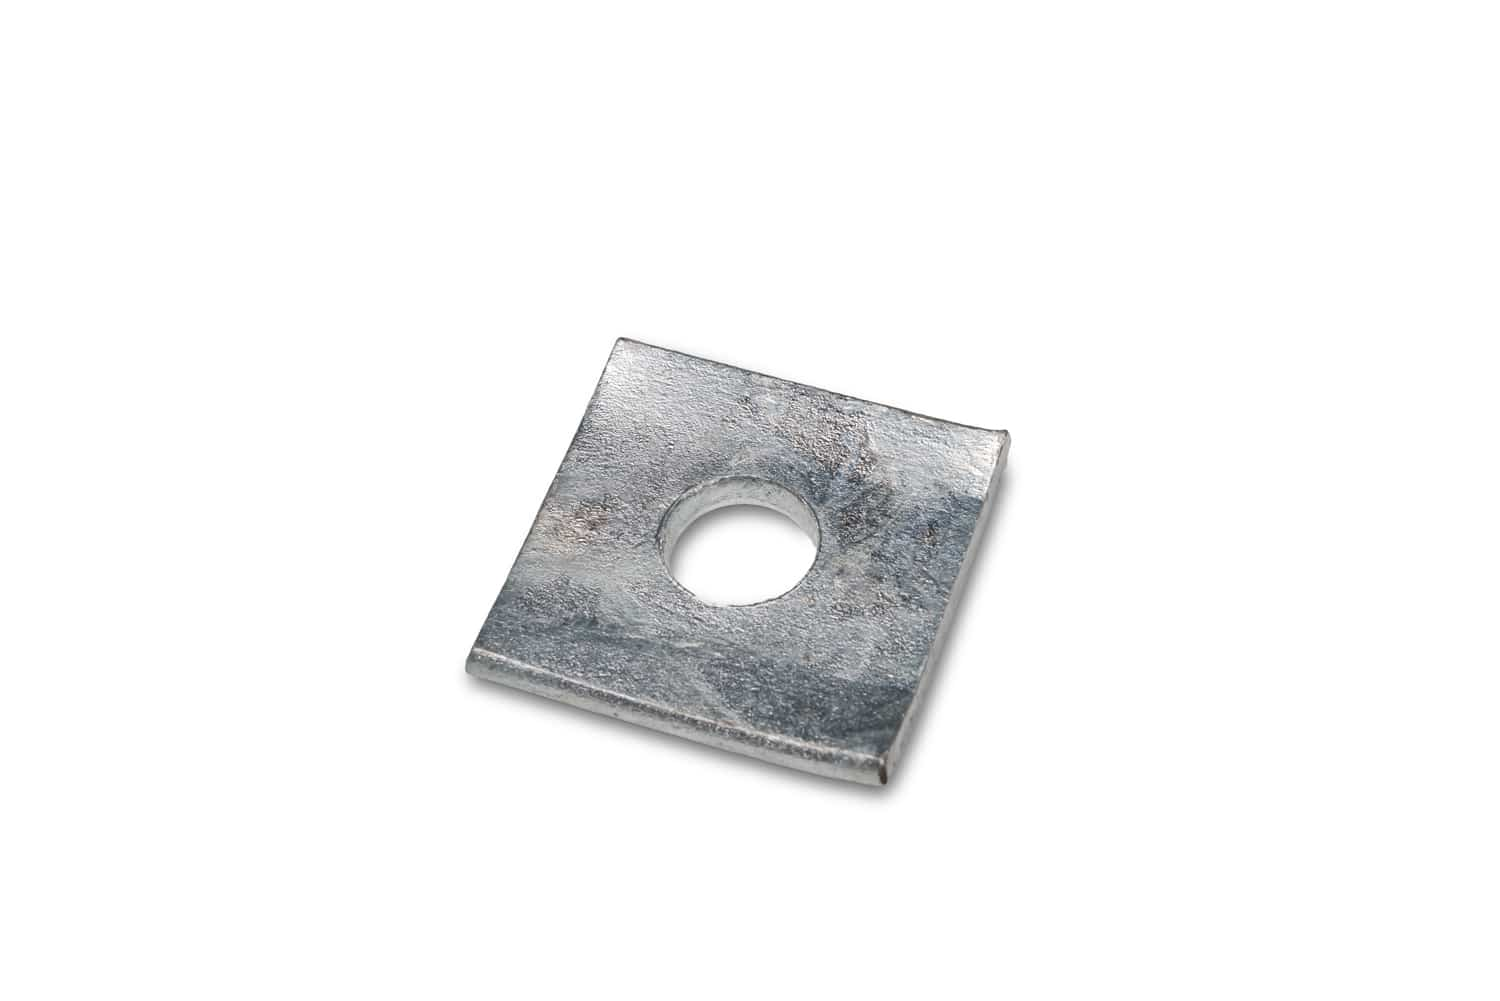 Square Curve Washers